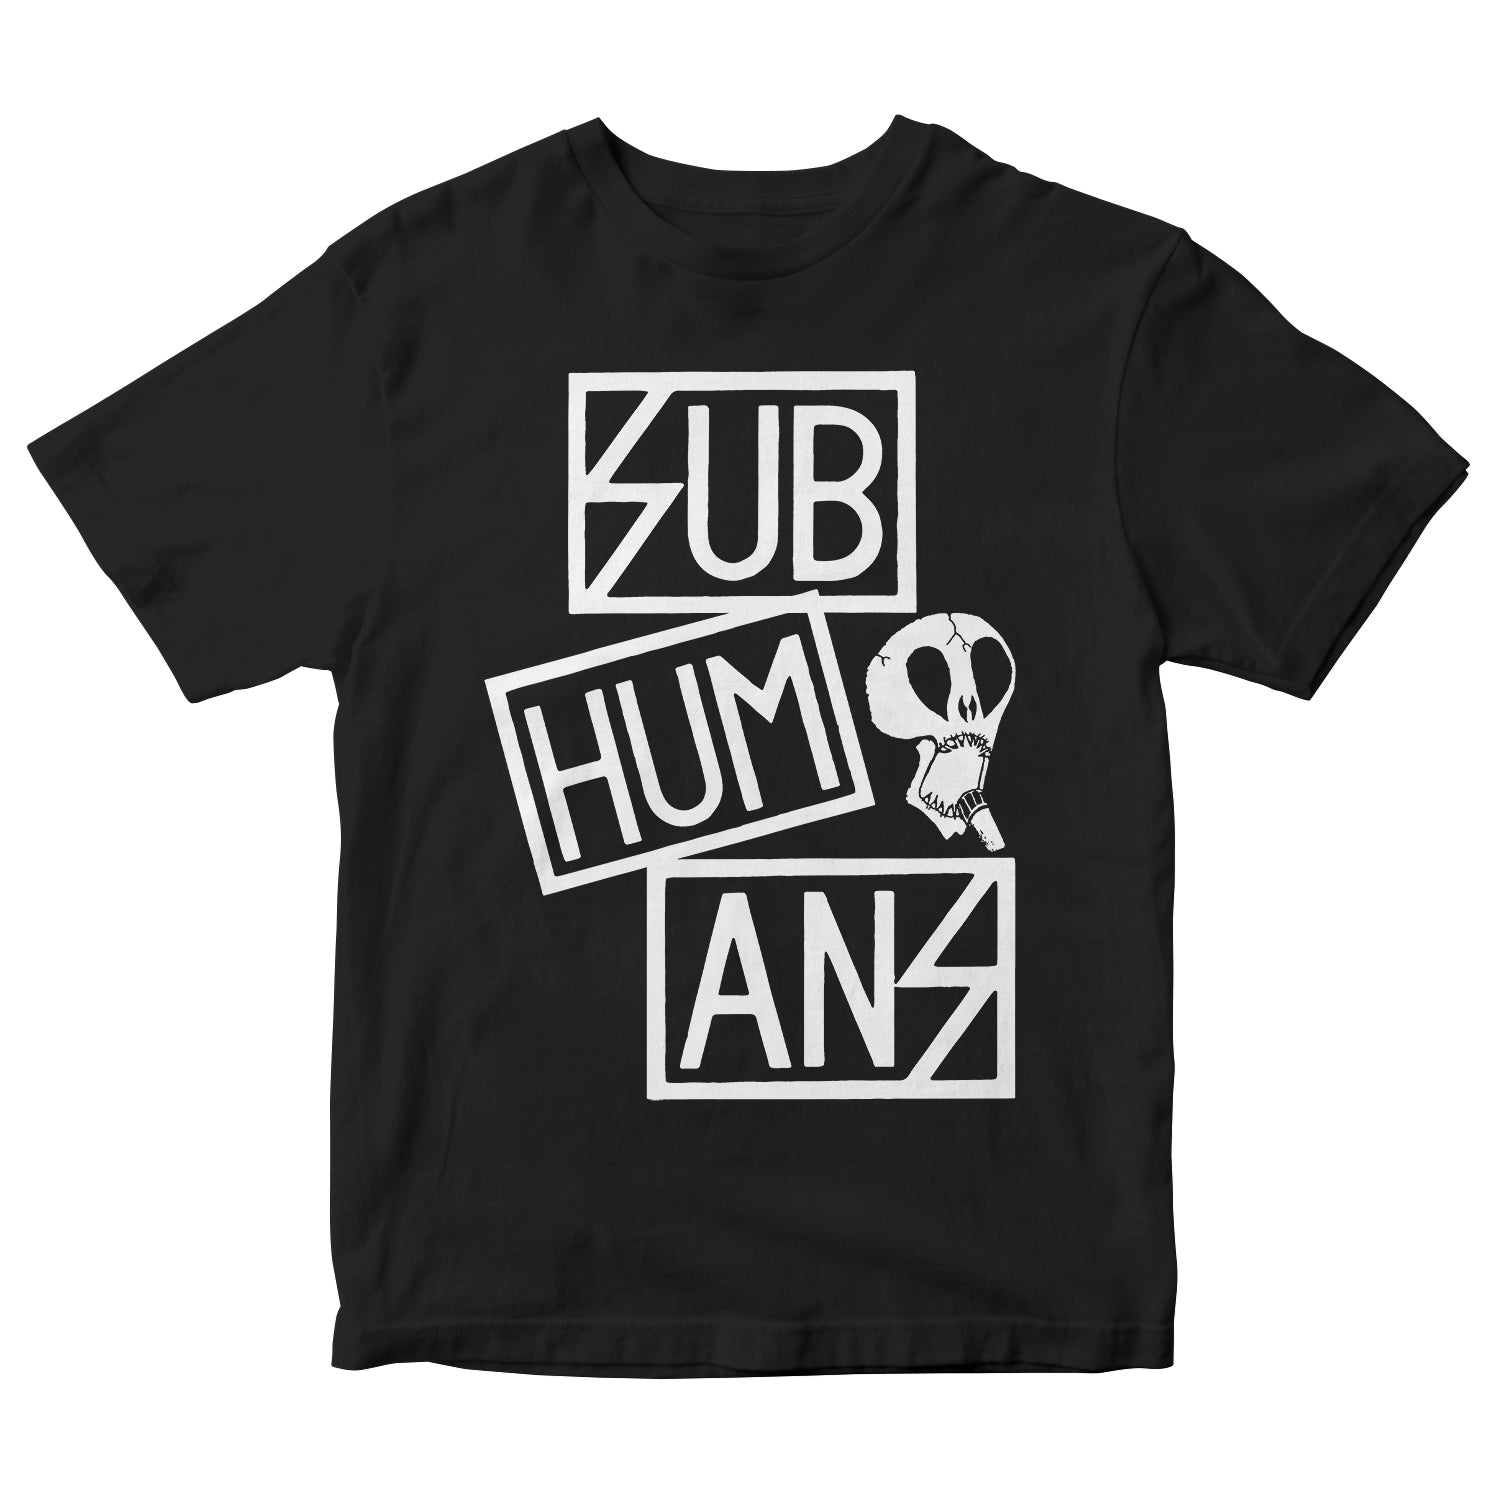 Subhumans - Small Skull & Three Part Logo - Black - T-shirt